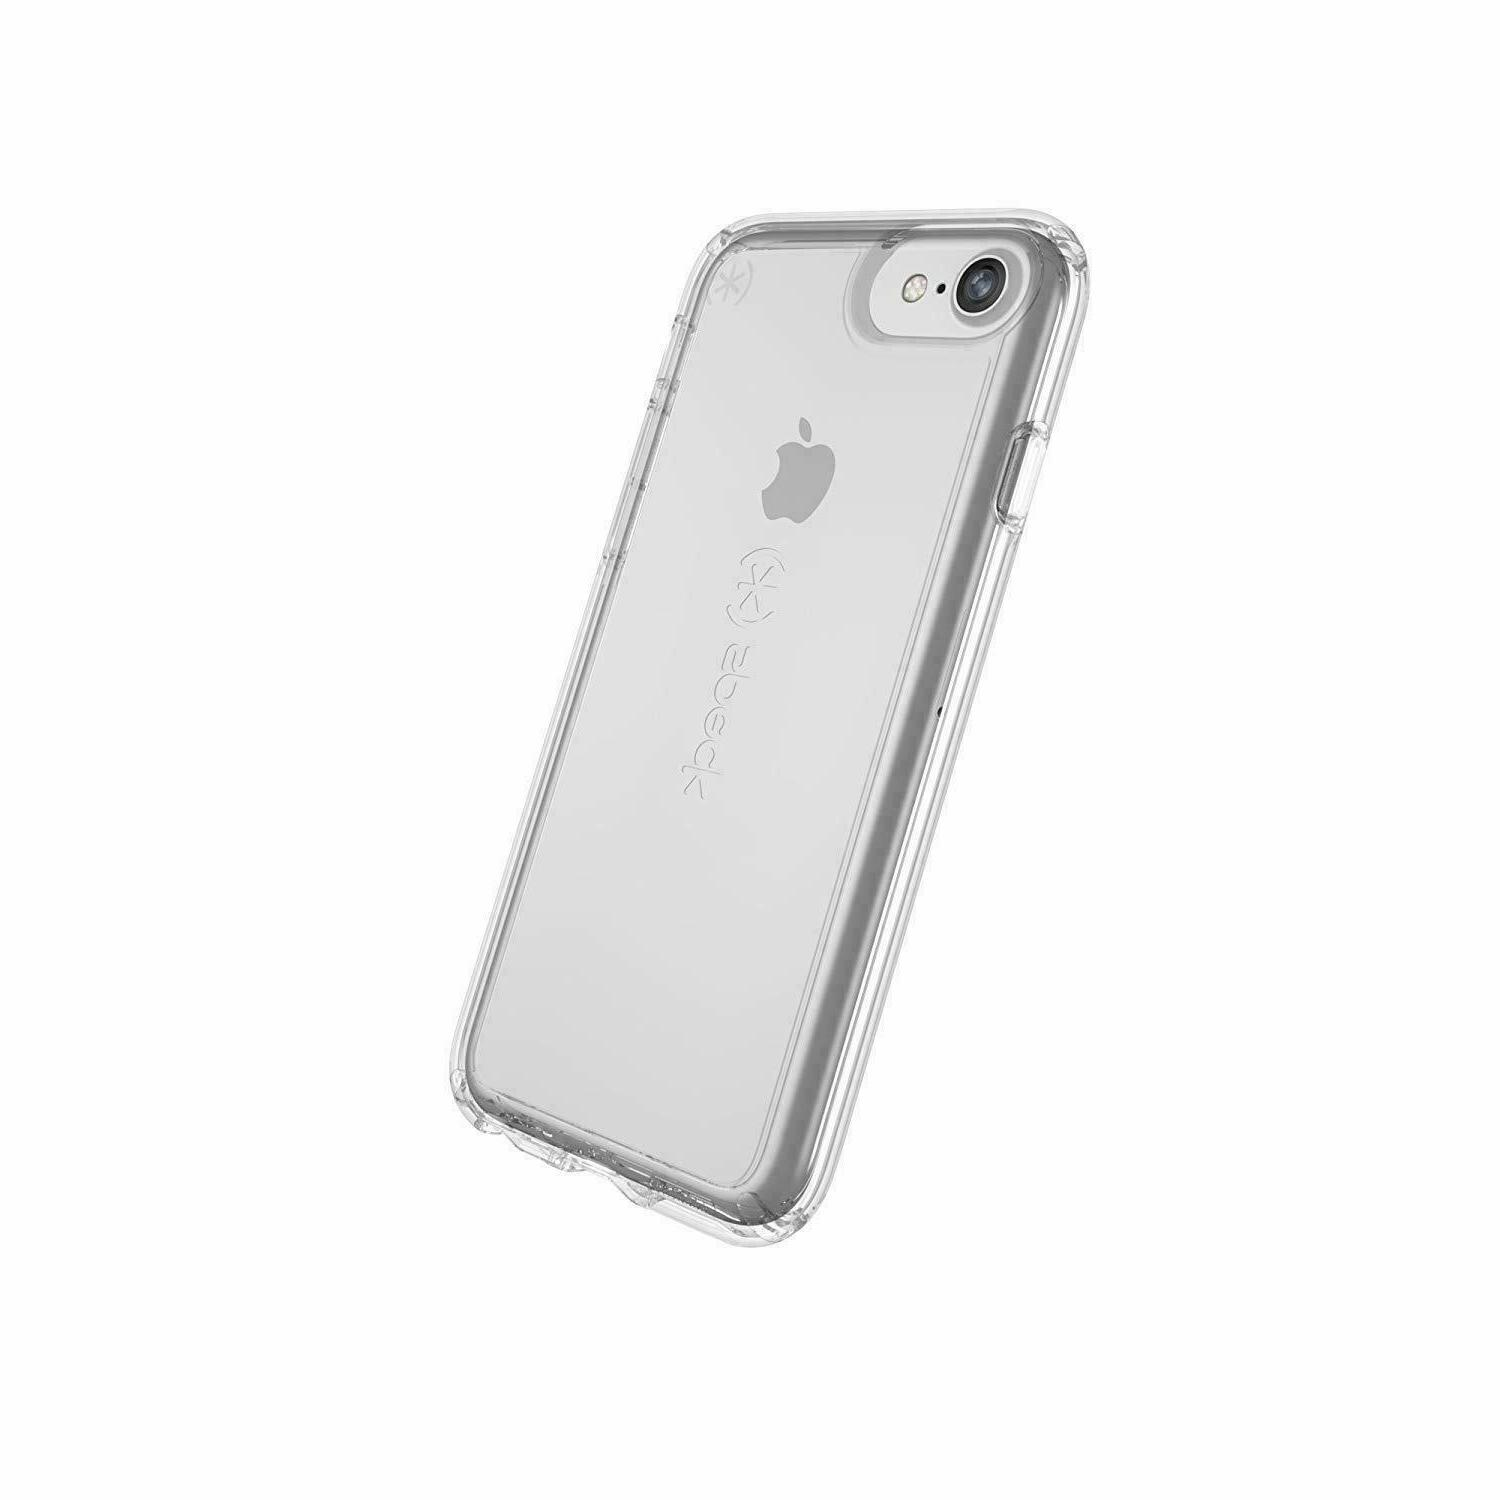 Speck Cell Cover Case iPhone 8/ 7/6S/6